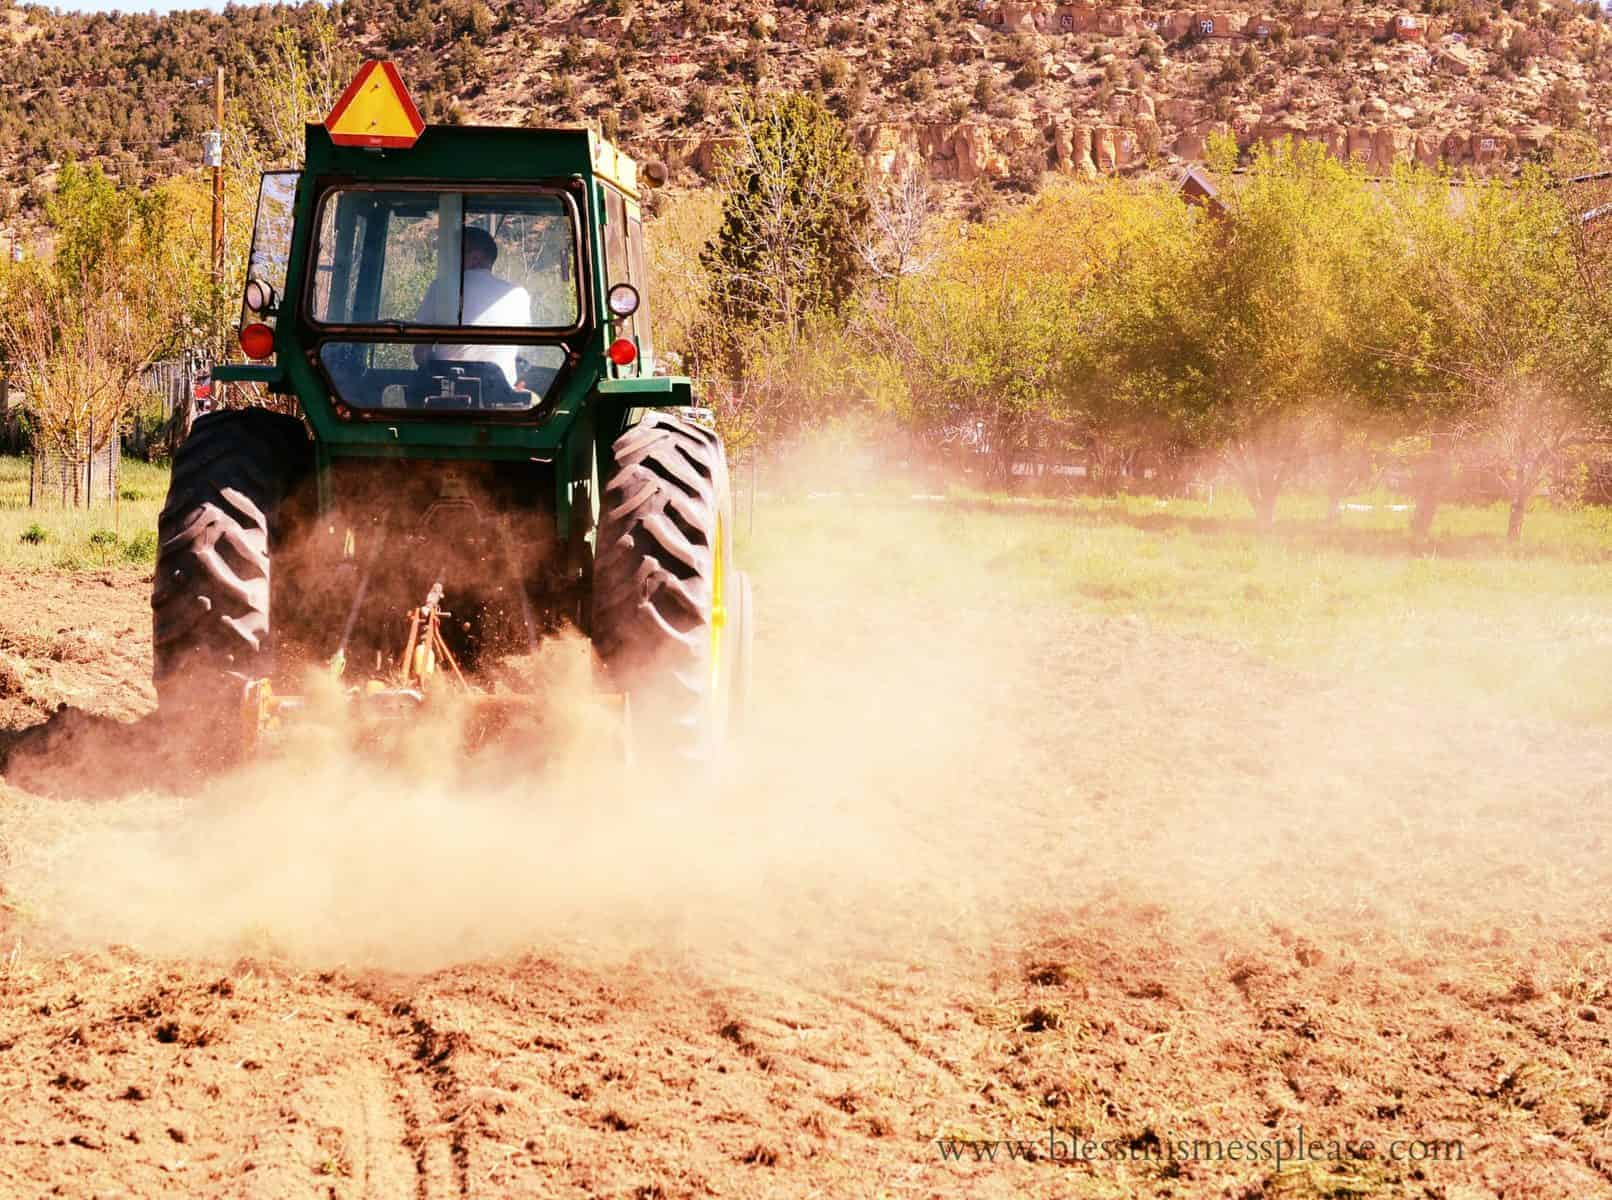 Tractor and Dust Image